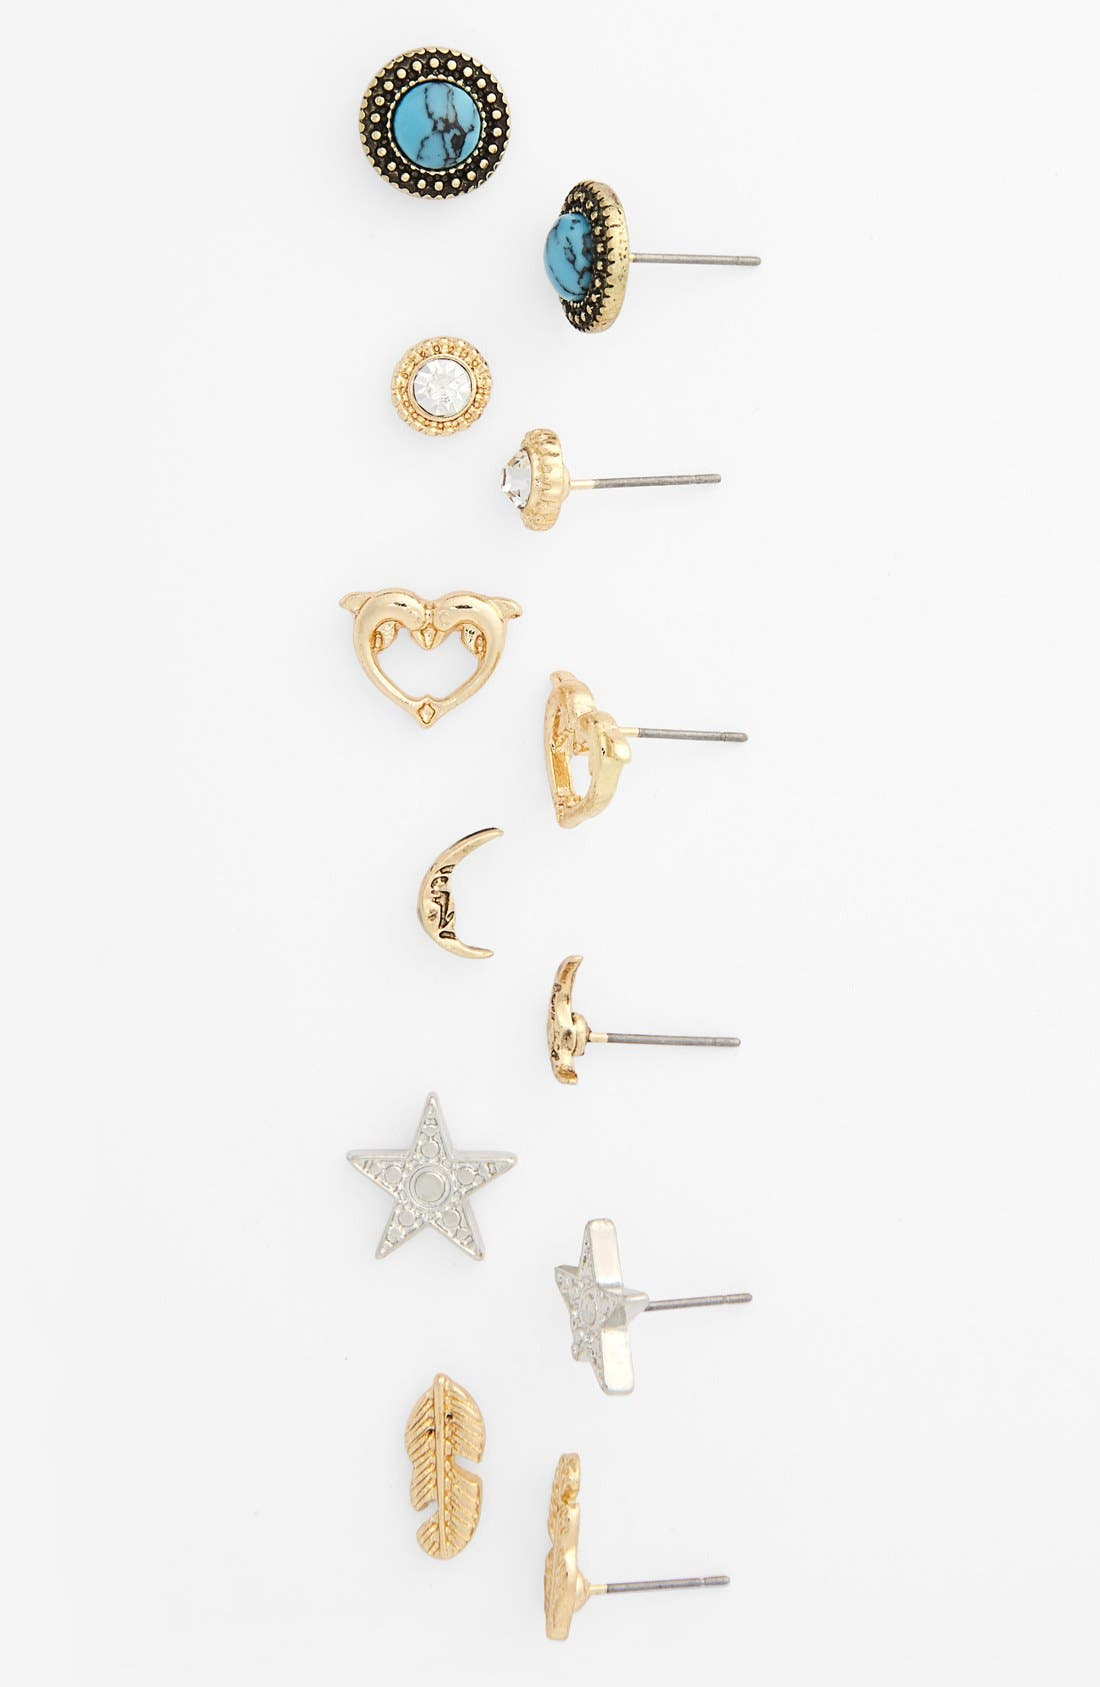 Alternate Image 1 Selected - Topshop Mixed Stud Earrings (Set of 6)